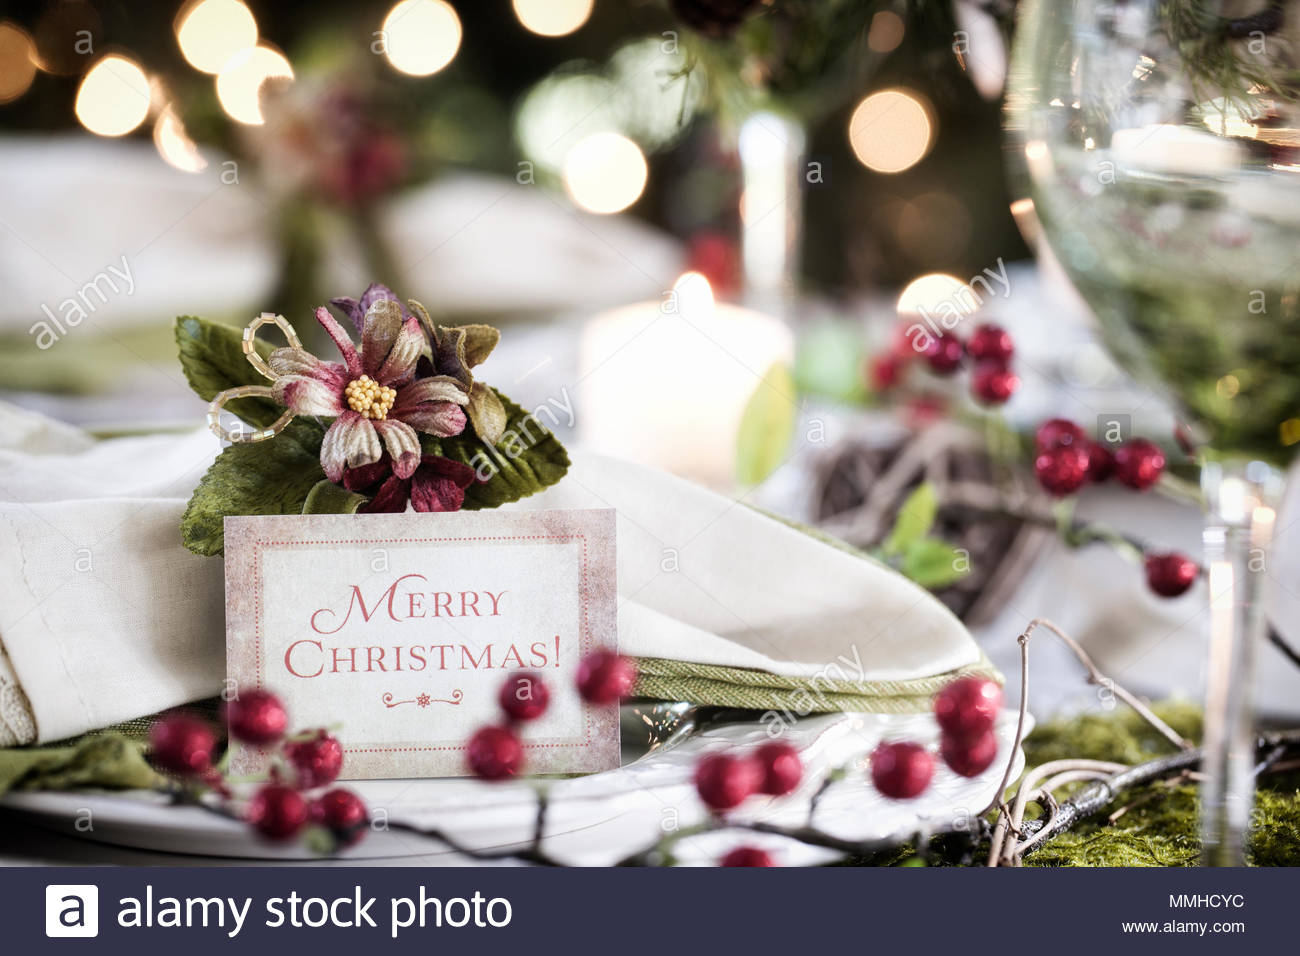 Christmas, holiday, environmentally friendly place setting, dining table - Stock Image